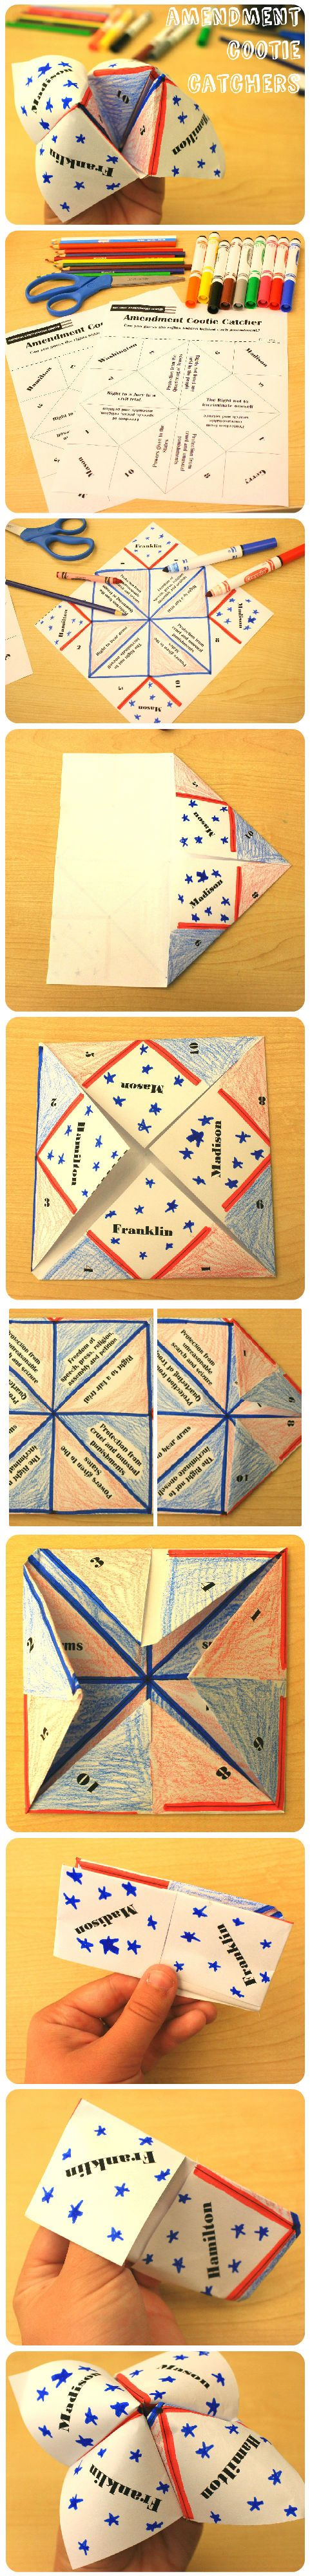 Freebie! This clever twist on the classic cootie catcher tests your knowledge of the first 10 amendments.